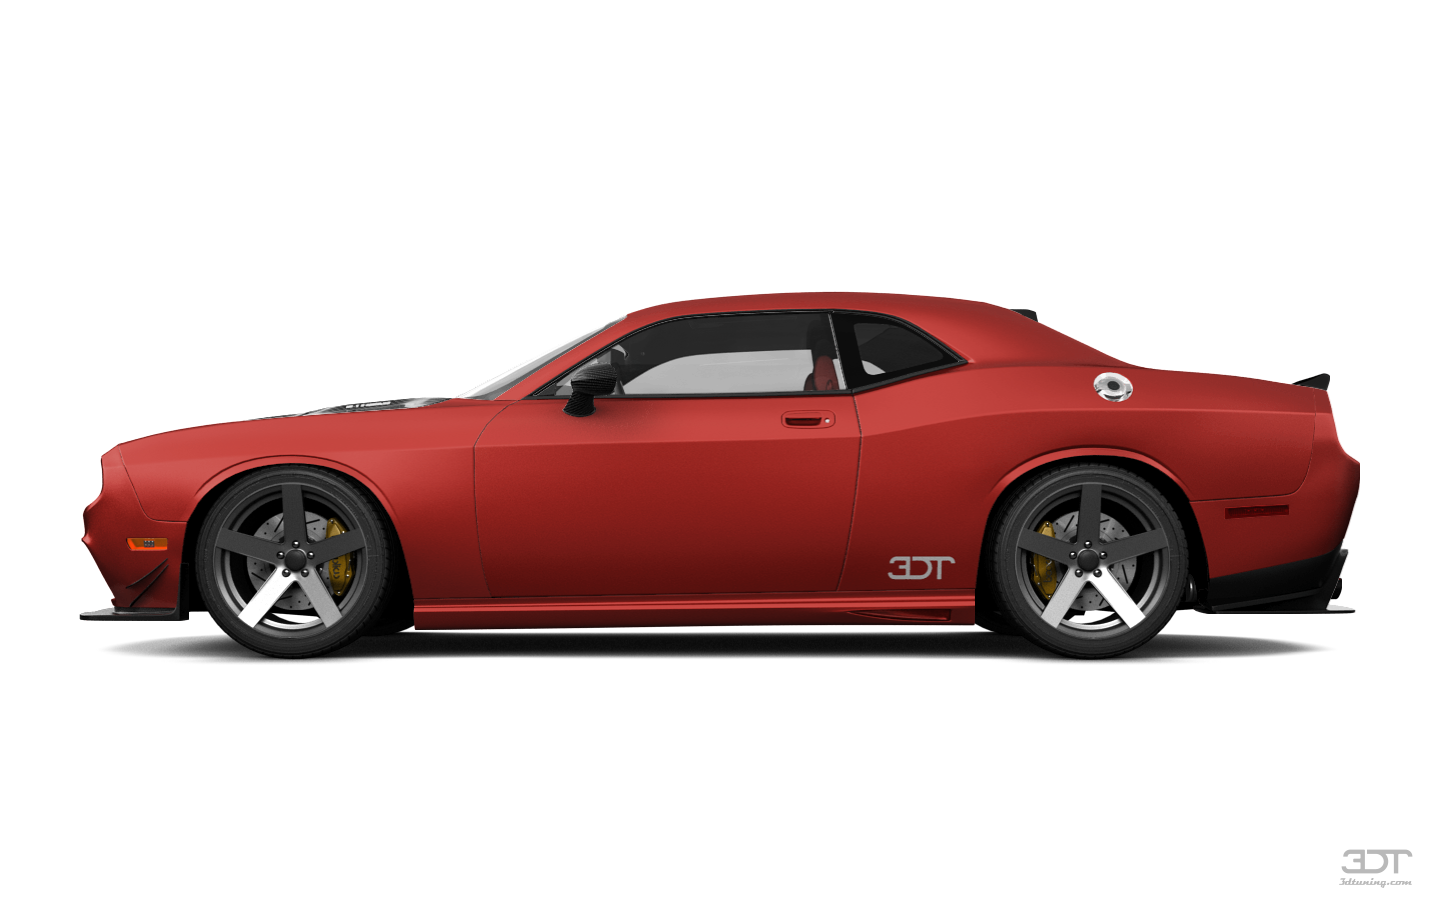 Dodge Challenger 2 Door Coupe 2008 tuning